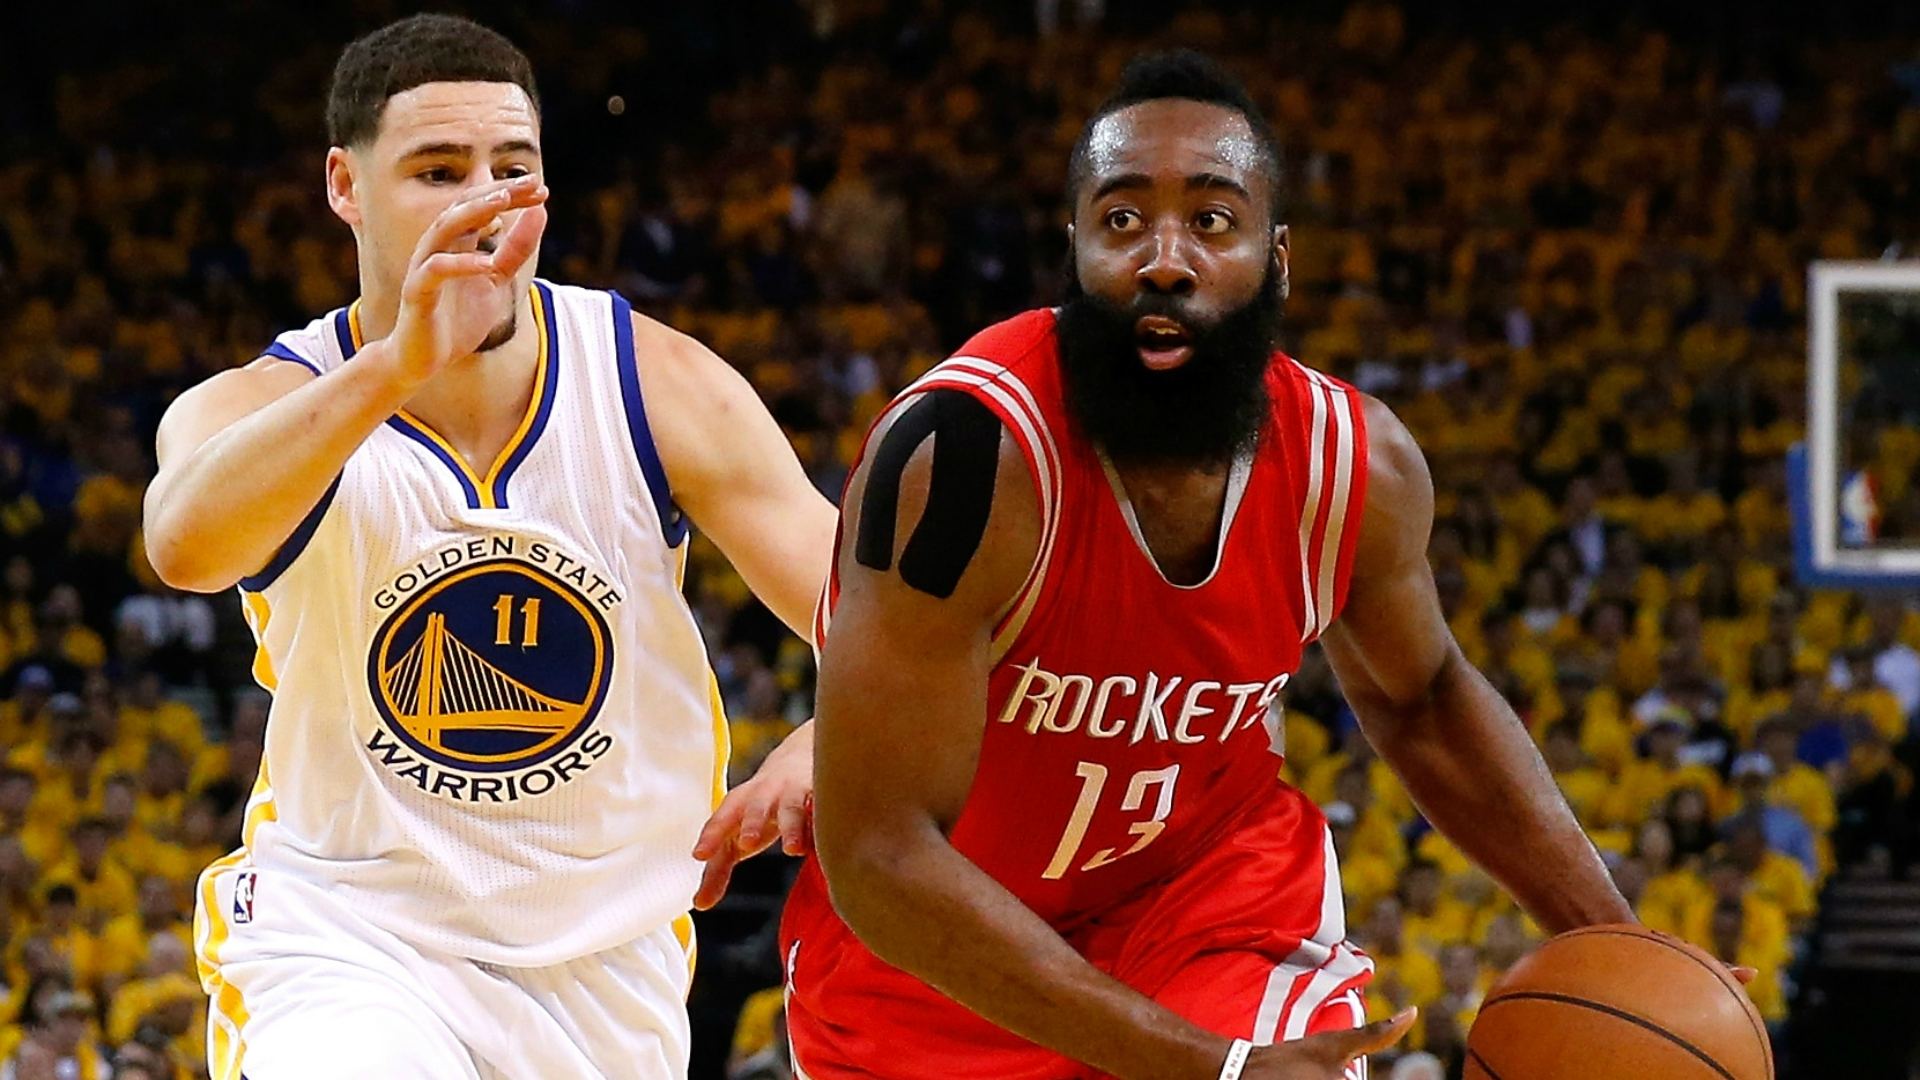 Klay-thompson-james-harden-getty-ftr-092216_6ohyivjkyh6ozgpmsjbypwk3